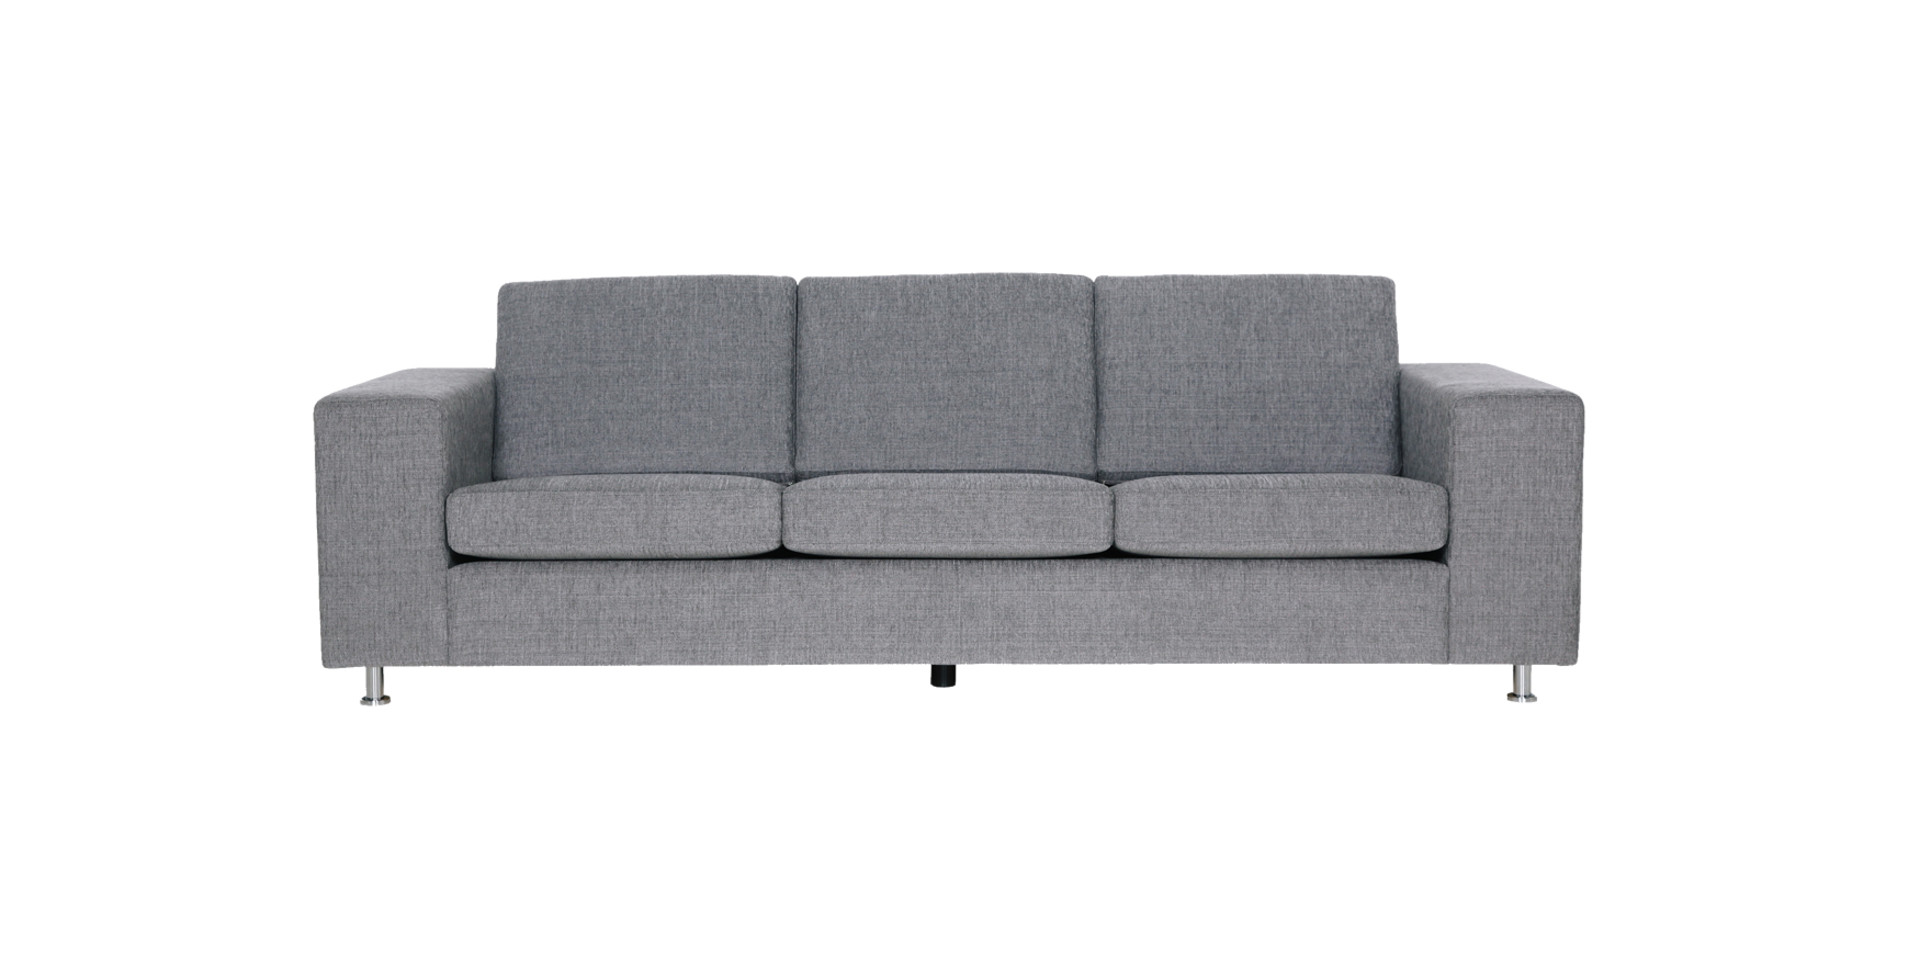 sits-palma-canape-3seater_veraam1c9grey_1